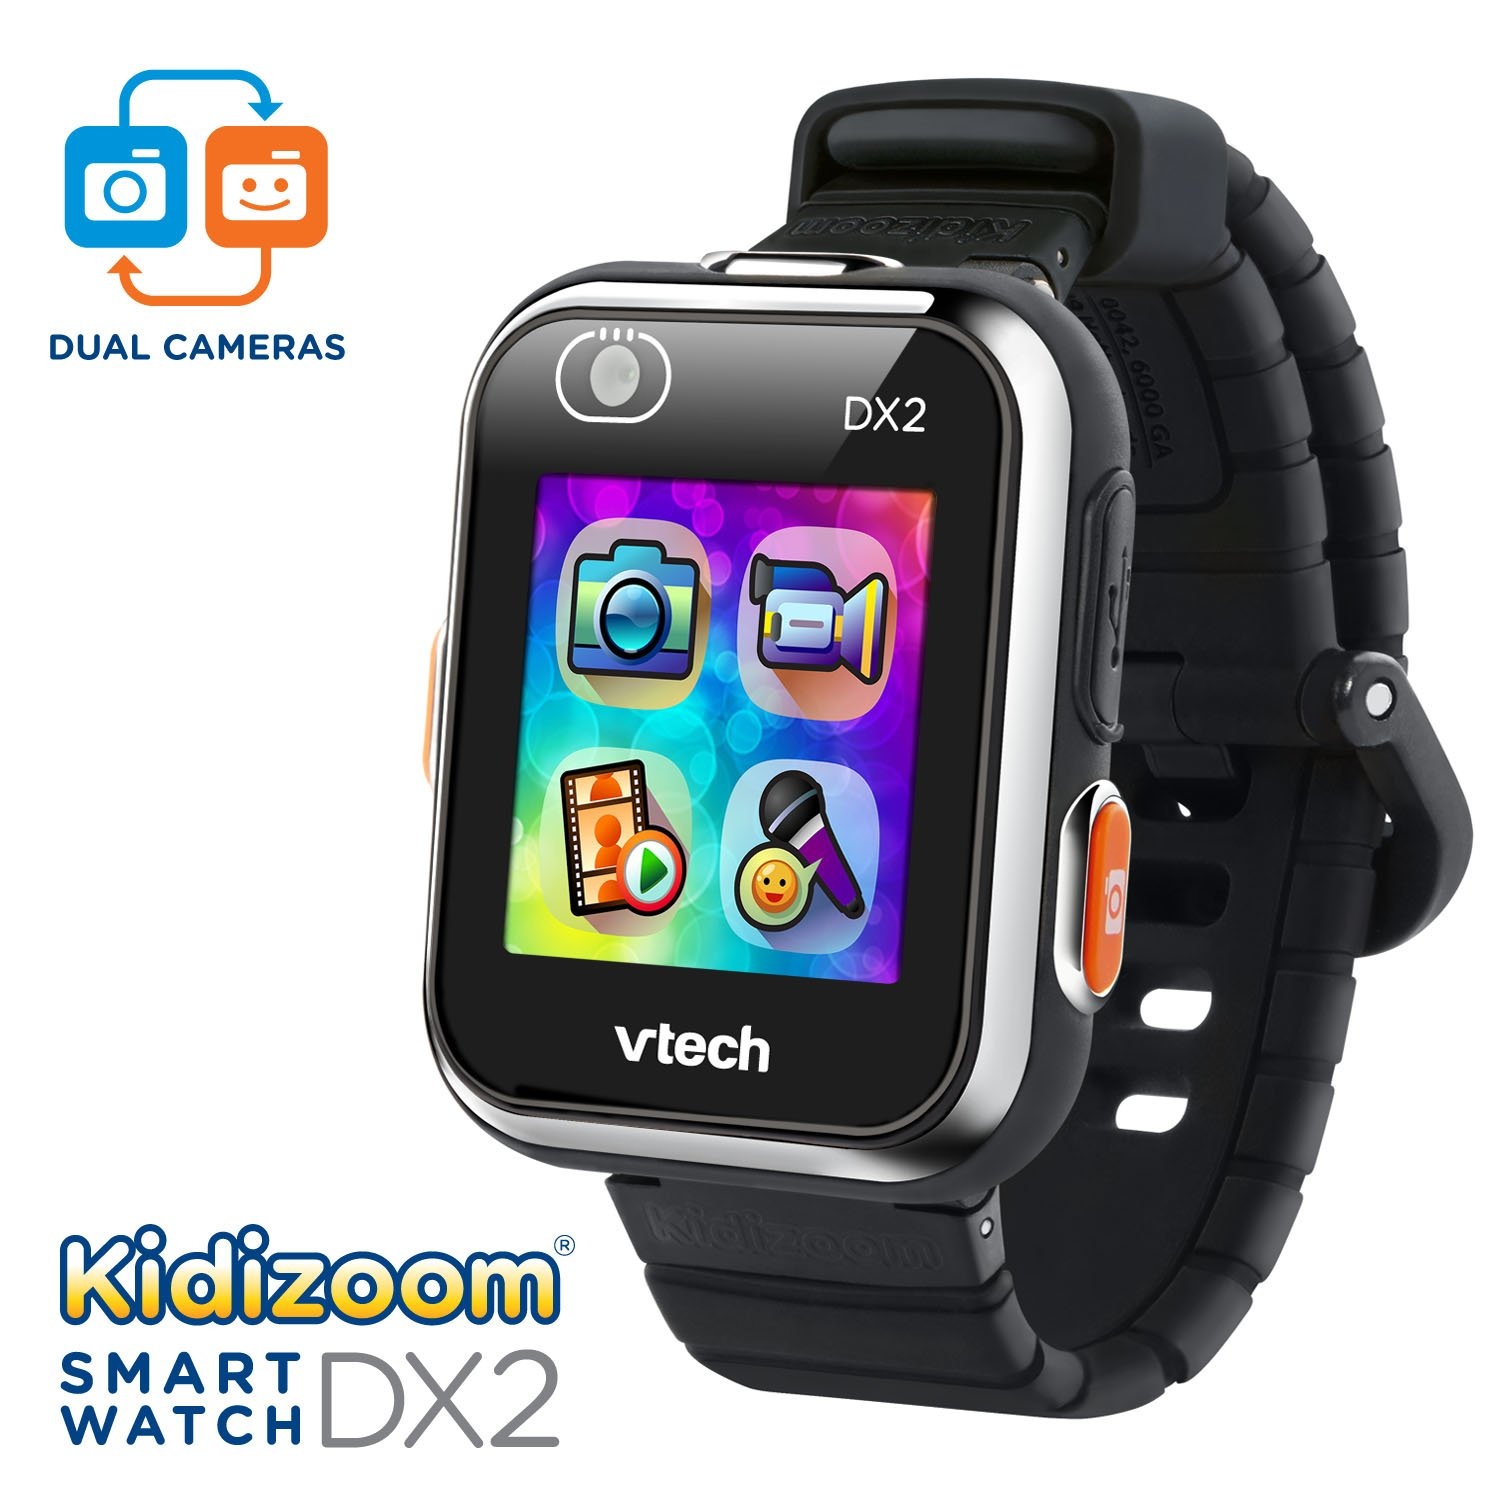 VTech Kidizoom Smartwatch DX2 Amazon Exclusive, Black